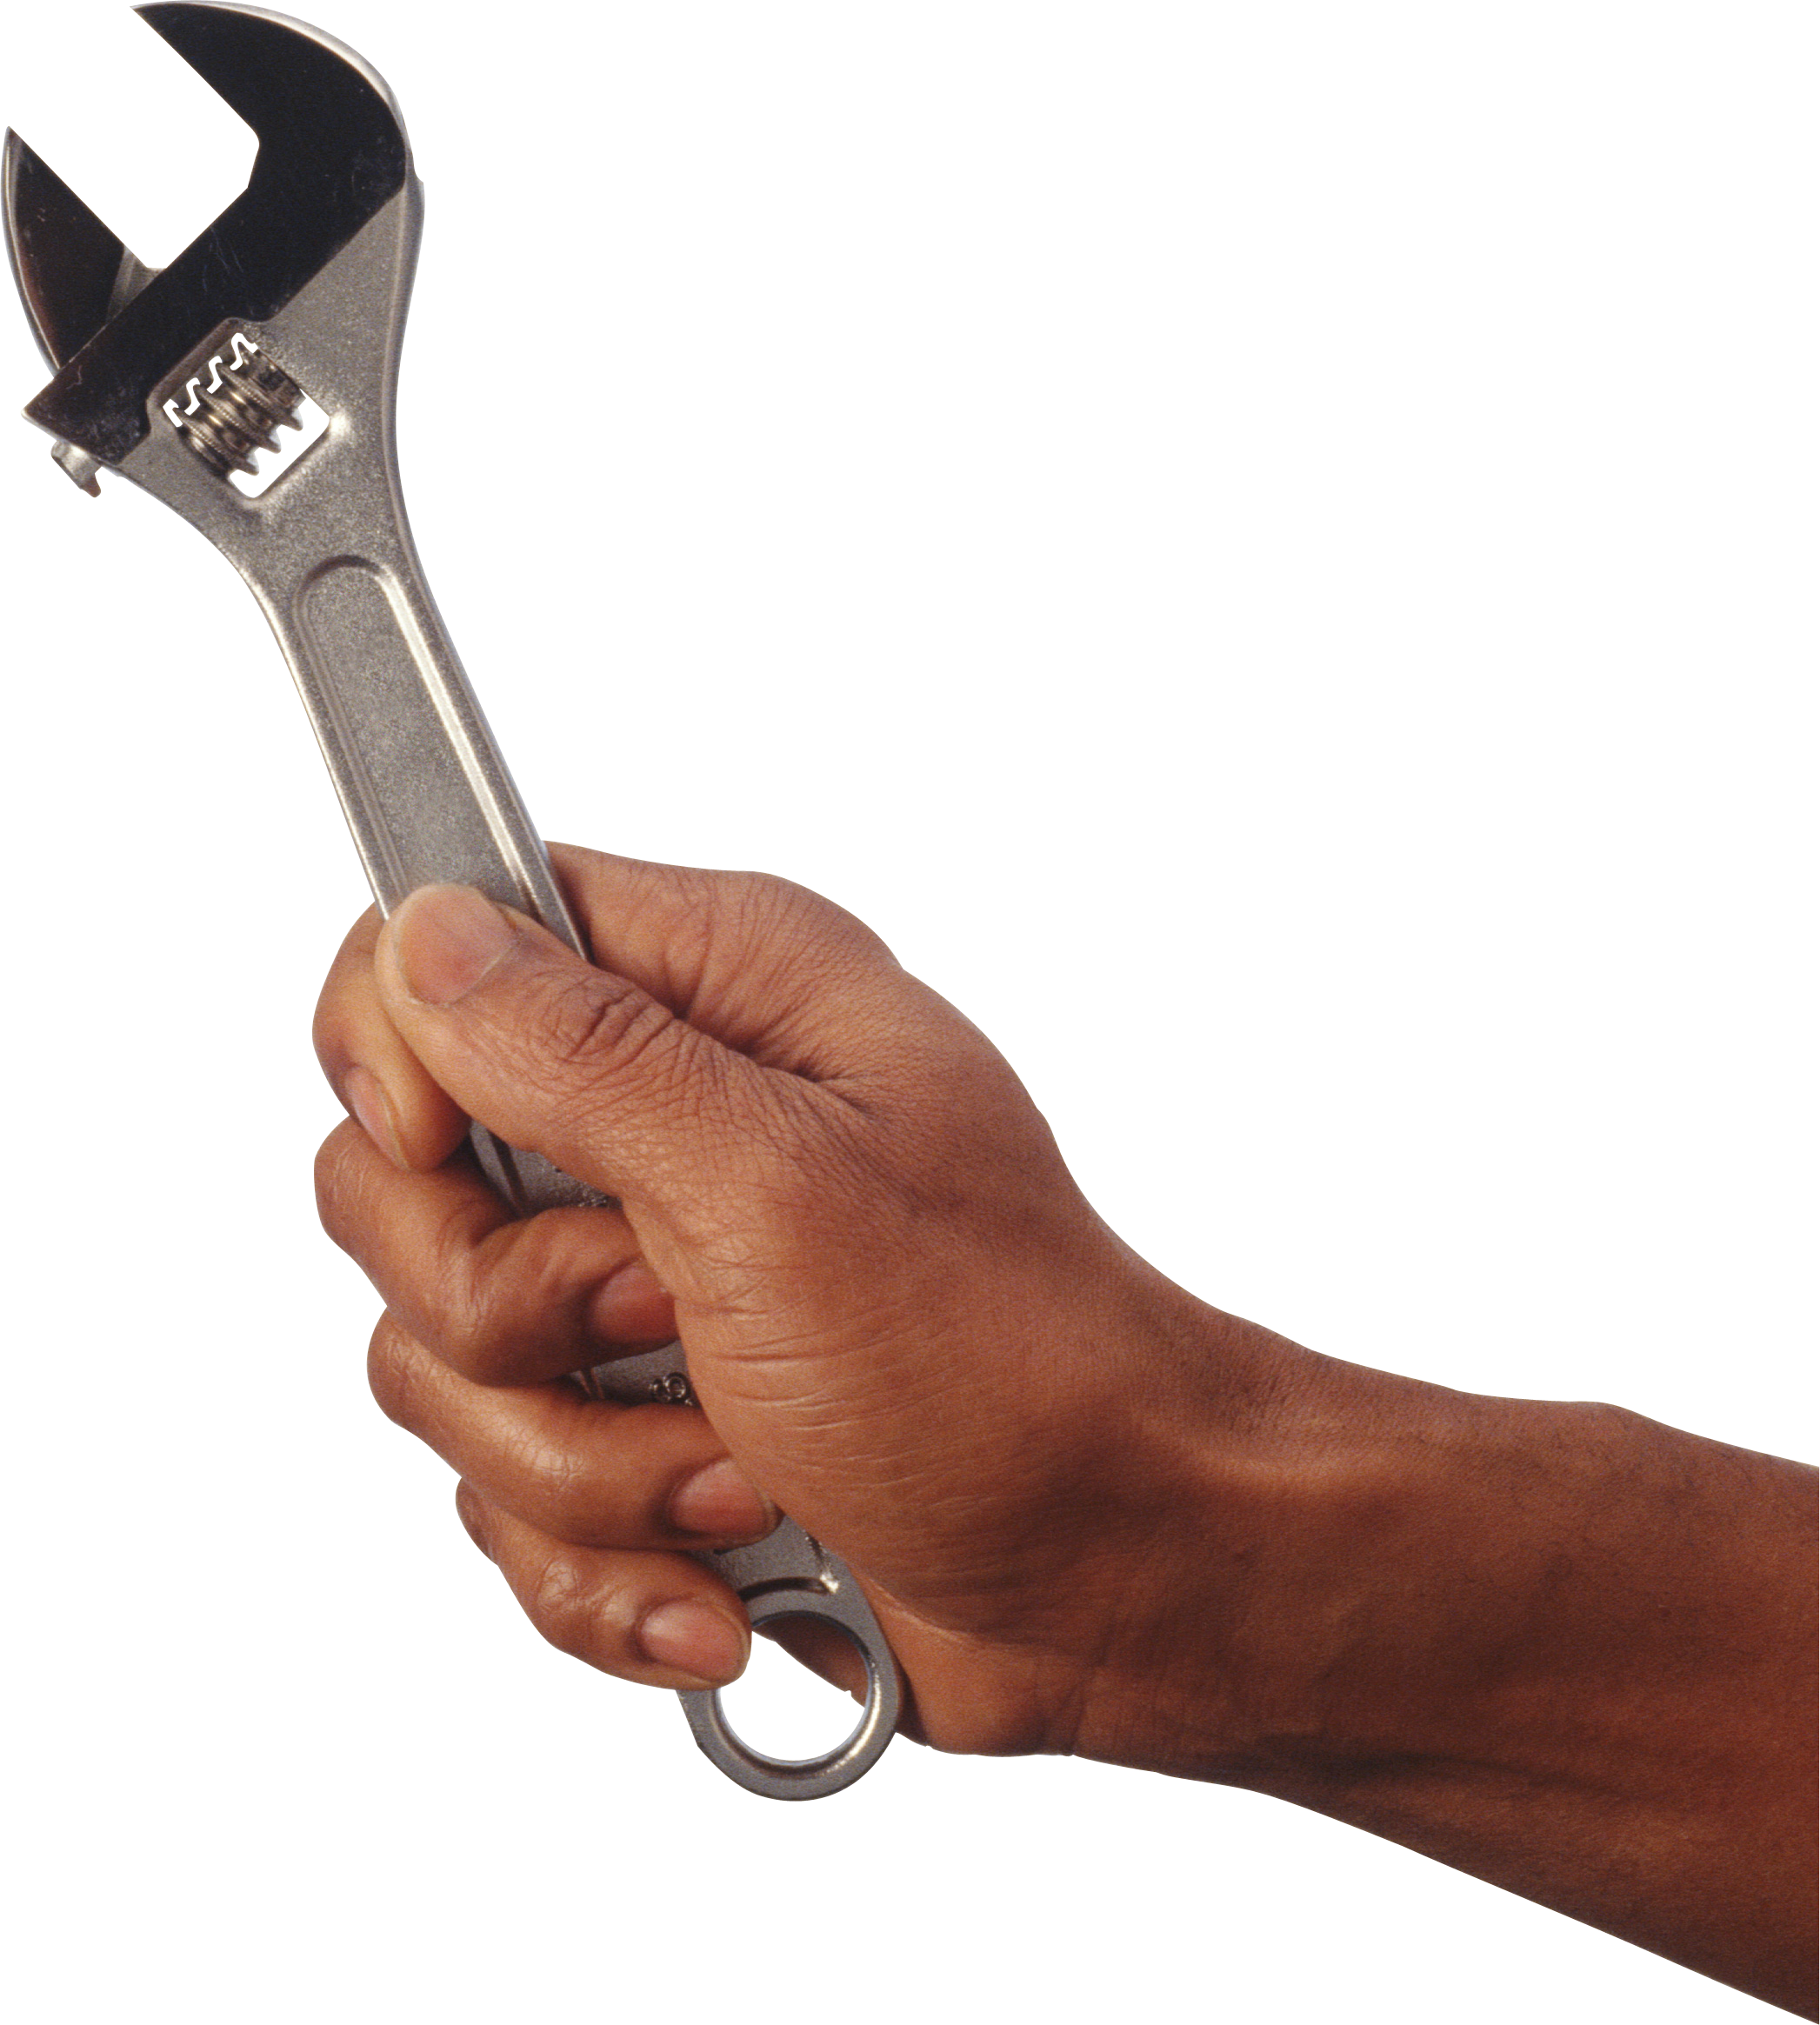 In hand . Hands clipart wrench